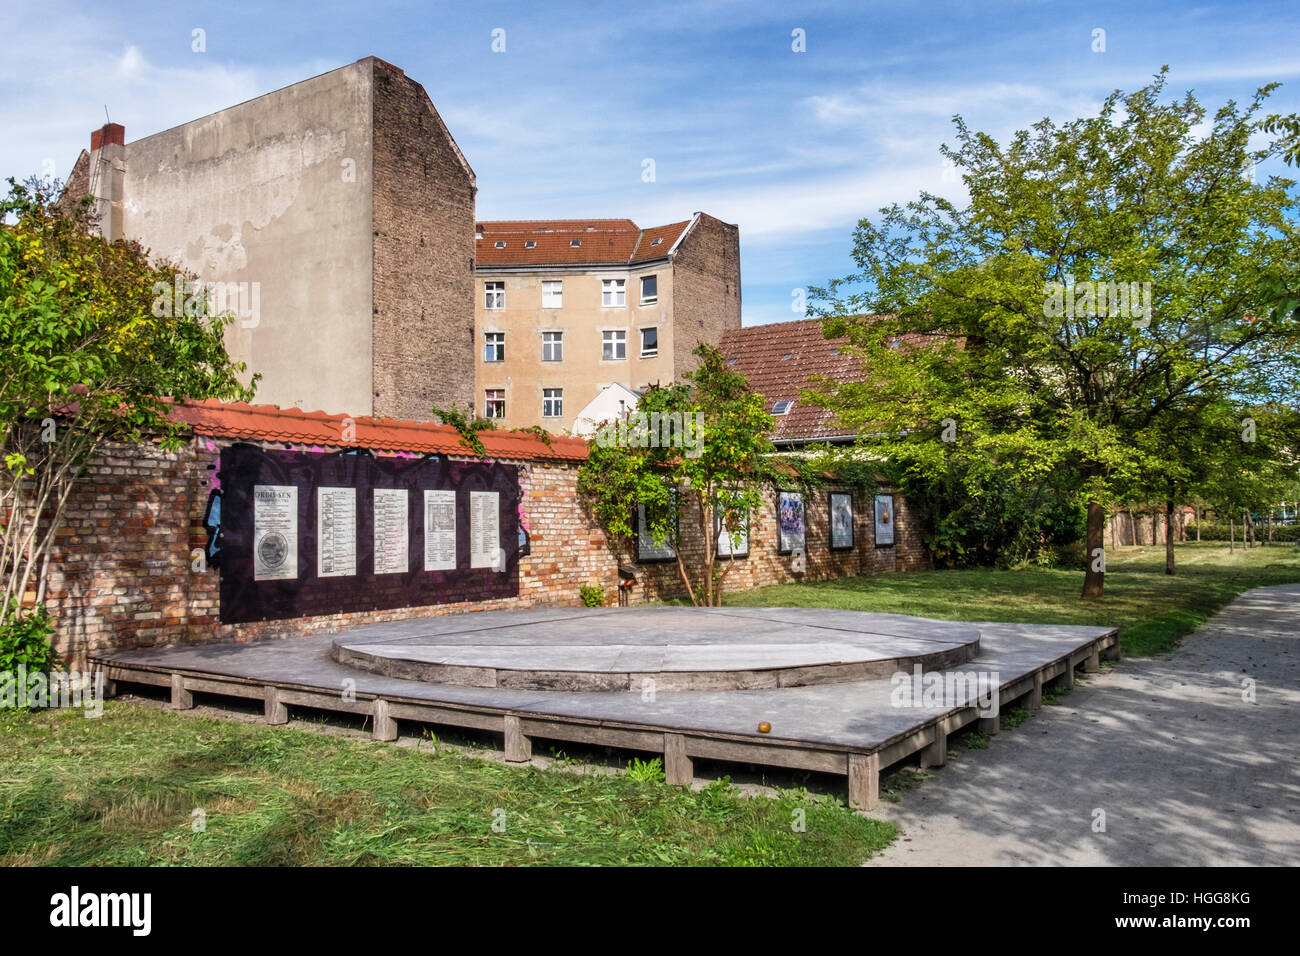 Berlin,Neukölln,Richardstrasse. Comenius garden. A leafy urban park with sculpture based on writings of philosopher - Stock Image